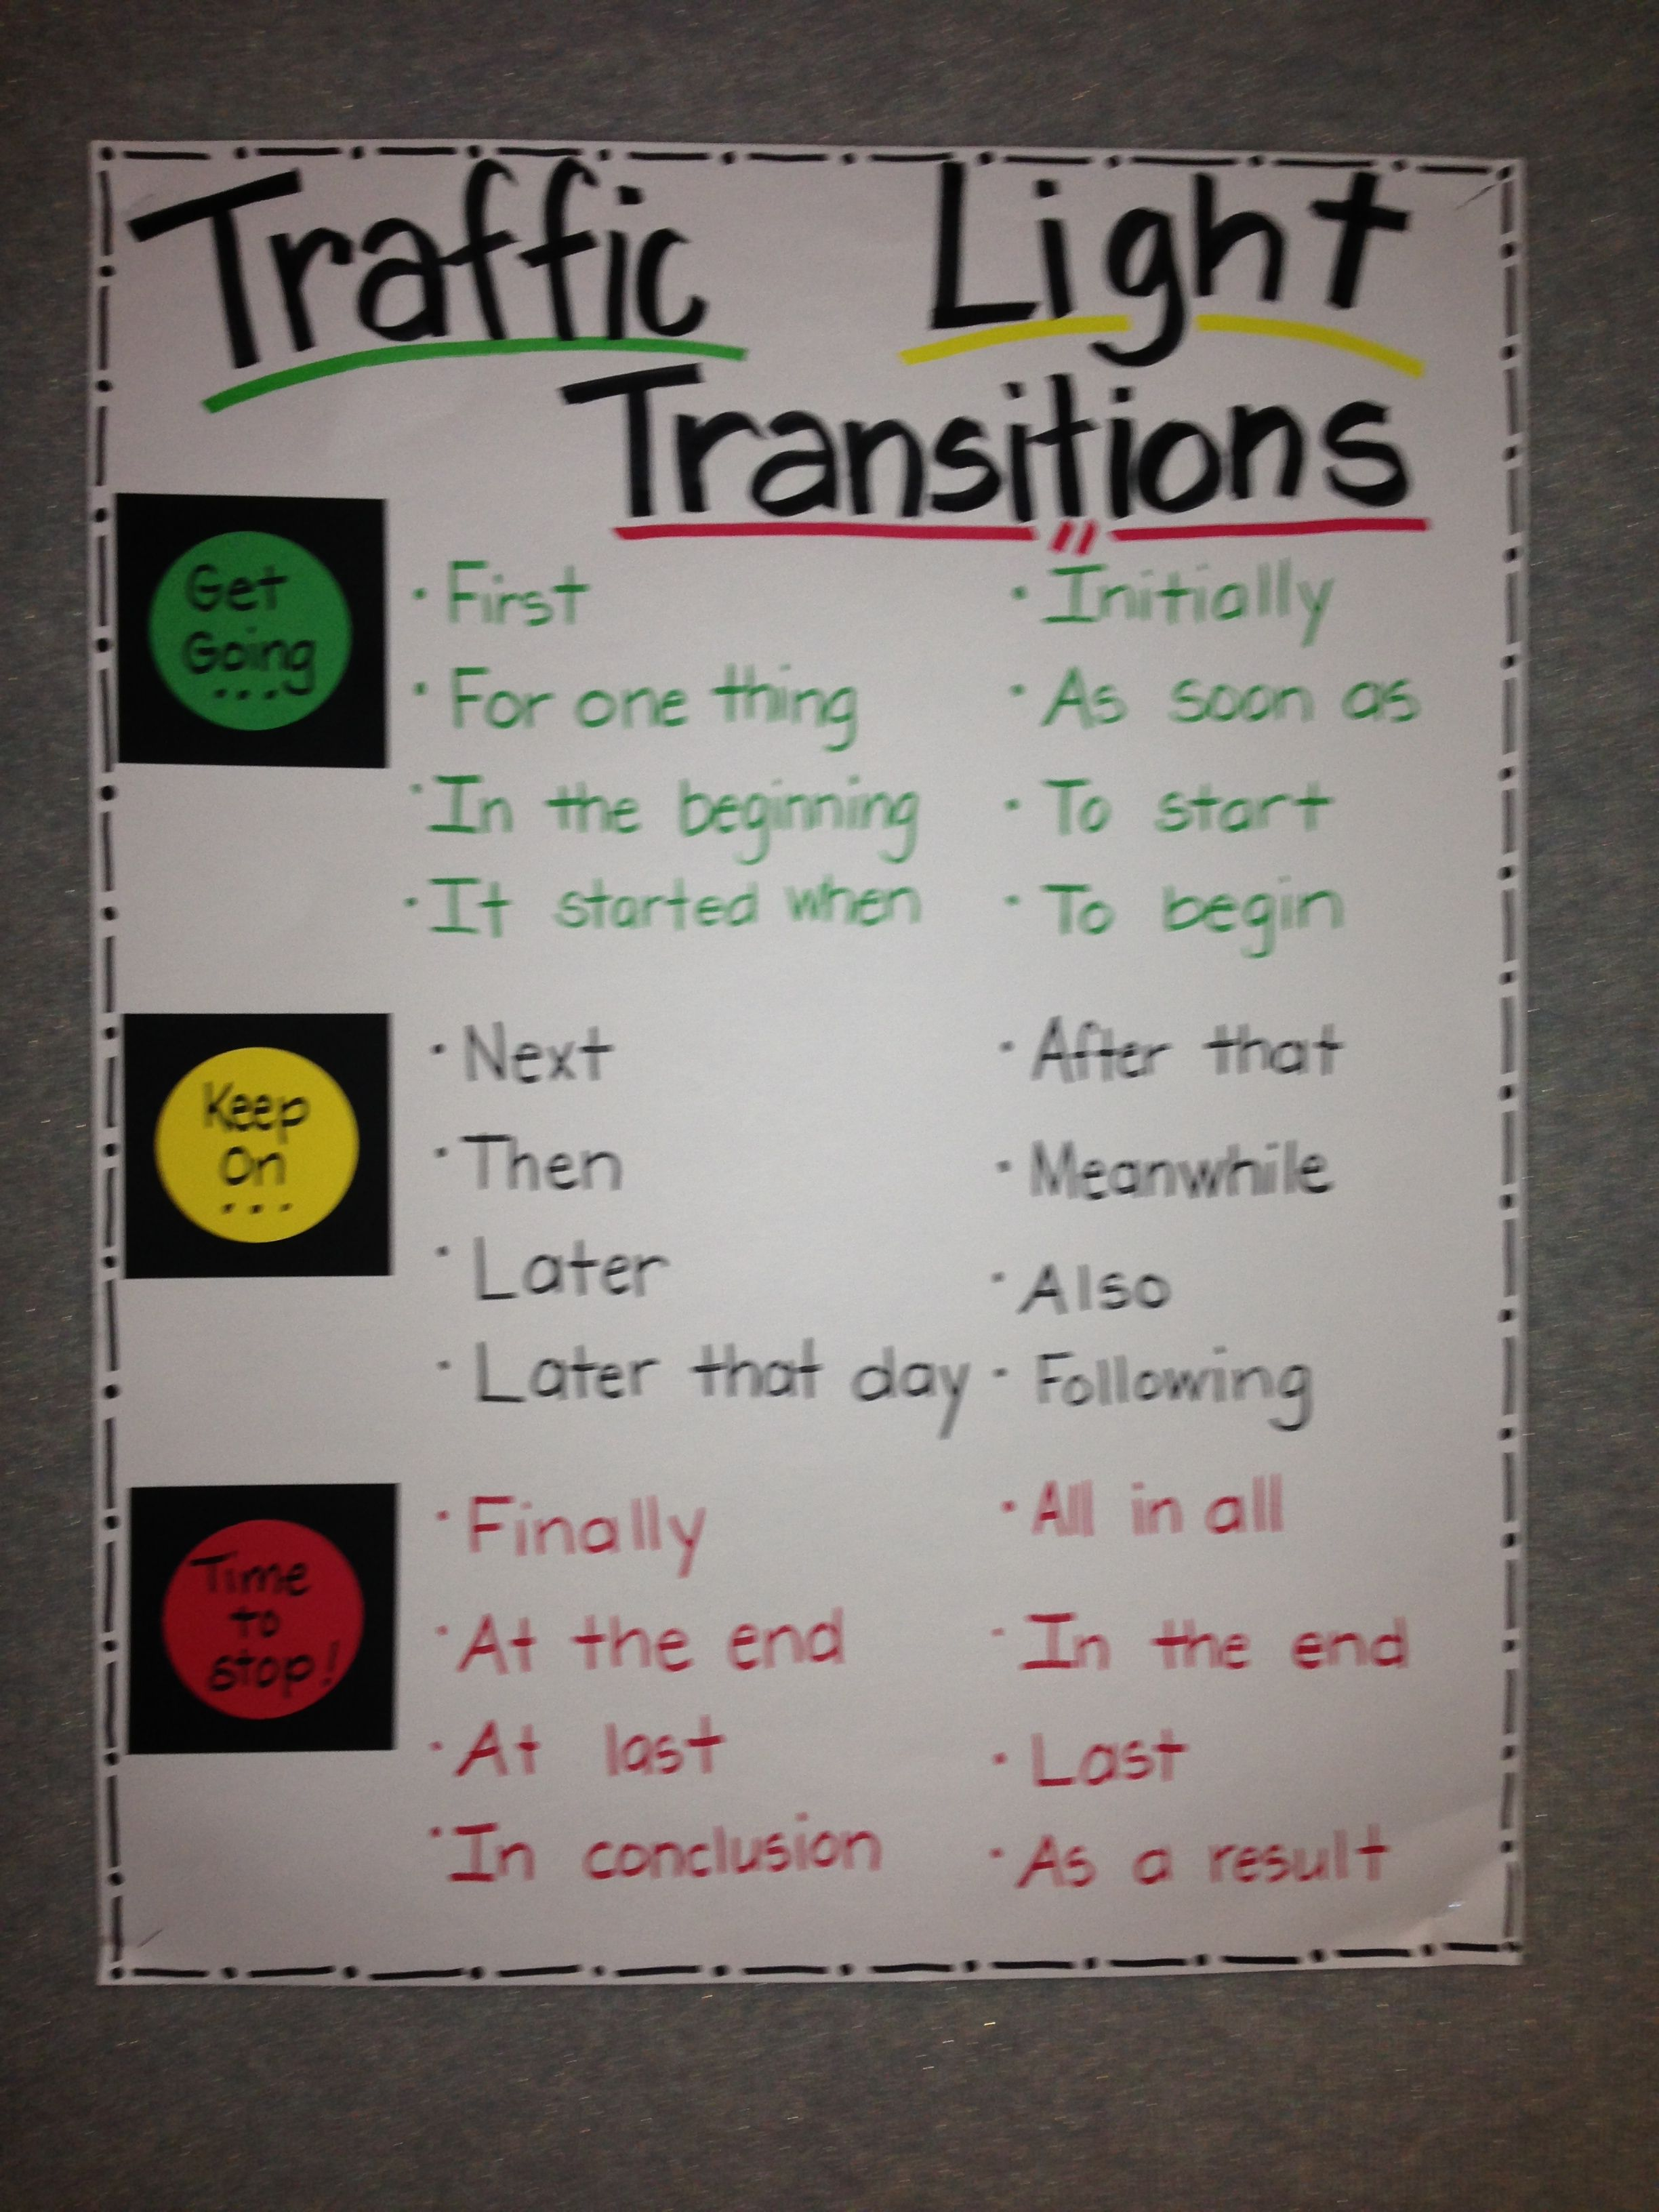 Transition words more ela anchor charts sequencing chart narrative writing also  th glad pinte rh pinterest